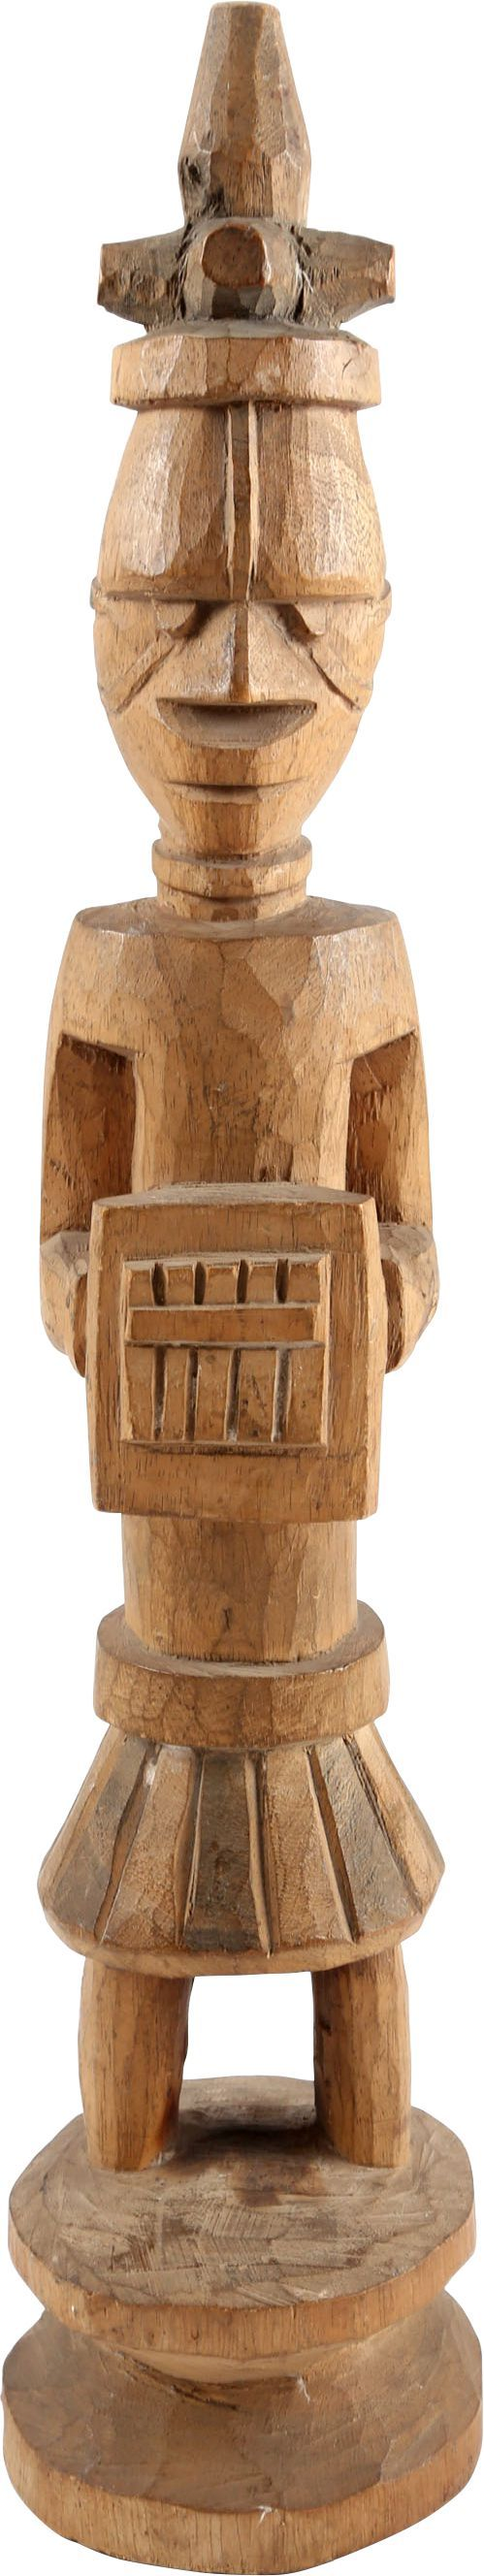 IBIBO MALE FETISH FIGURE - Fagan Arms